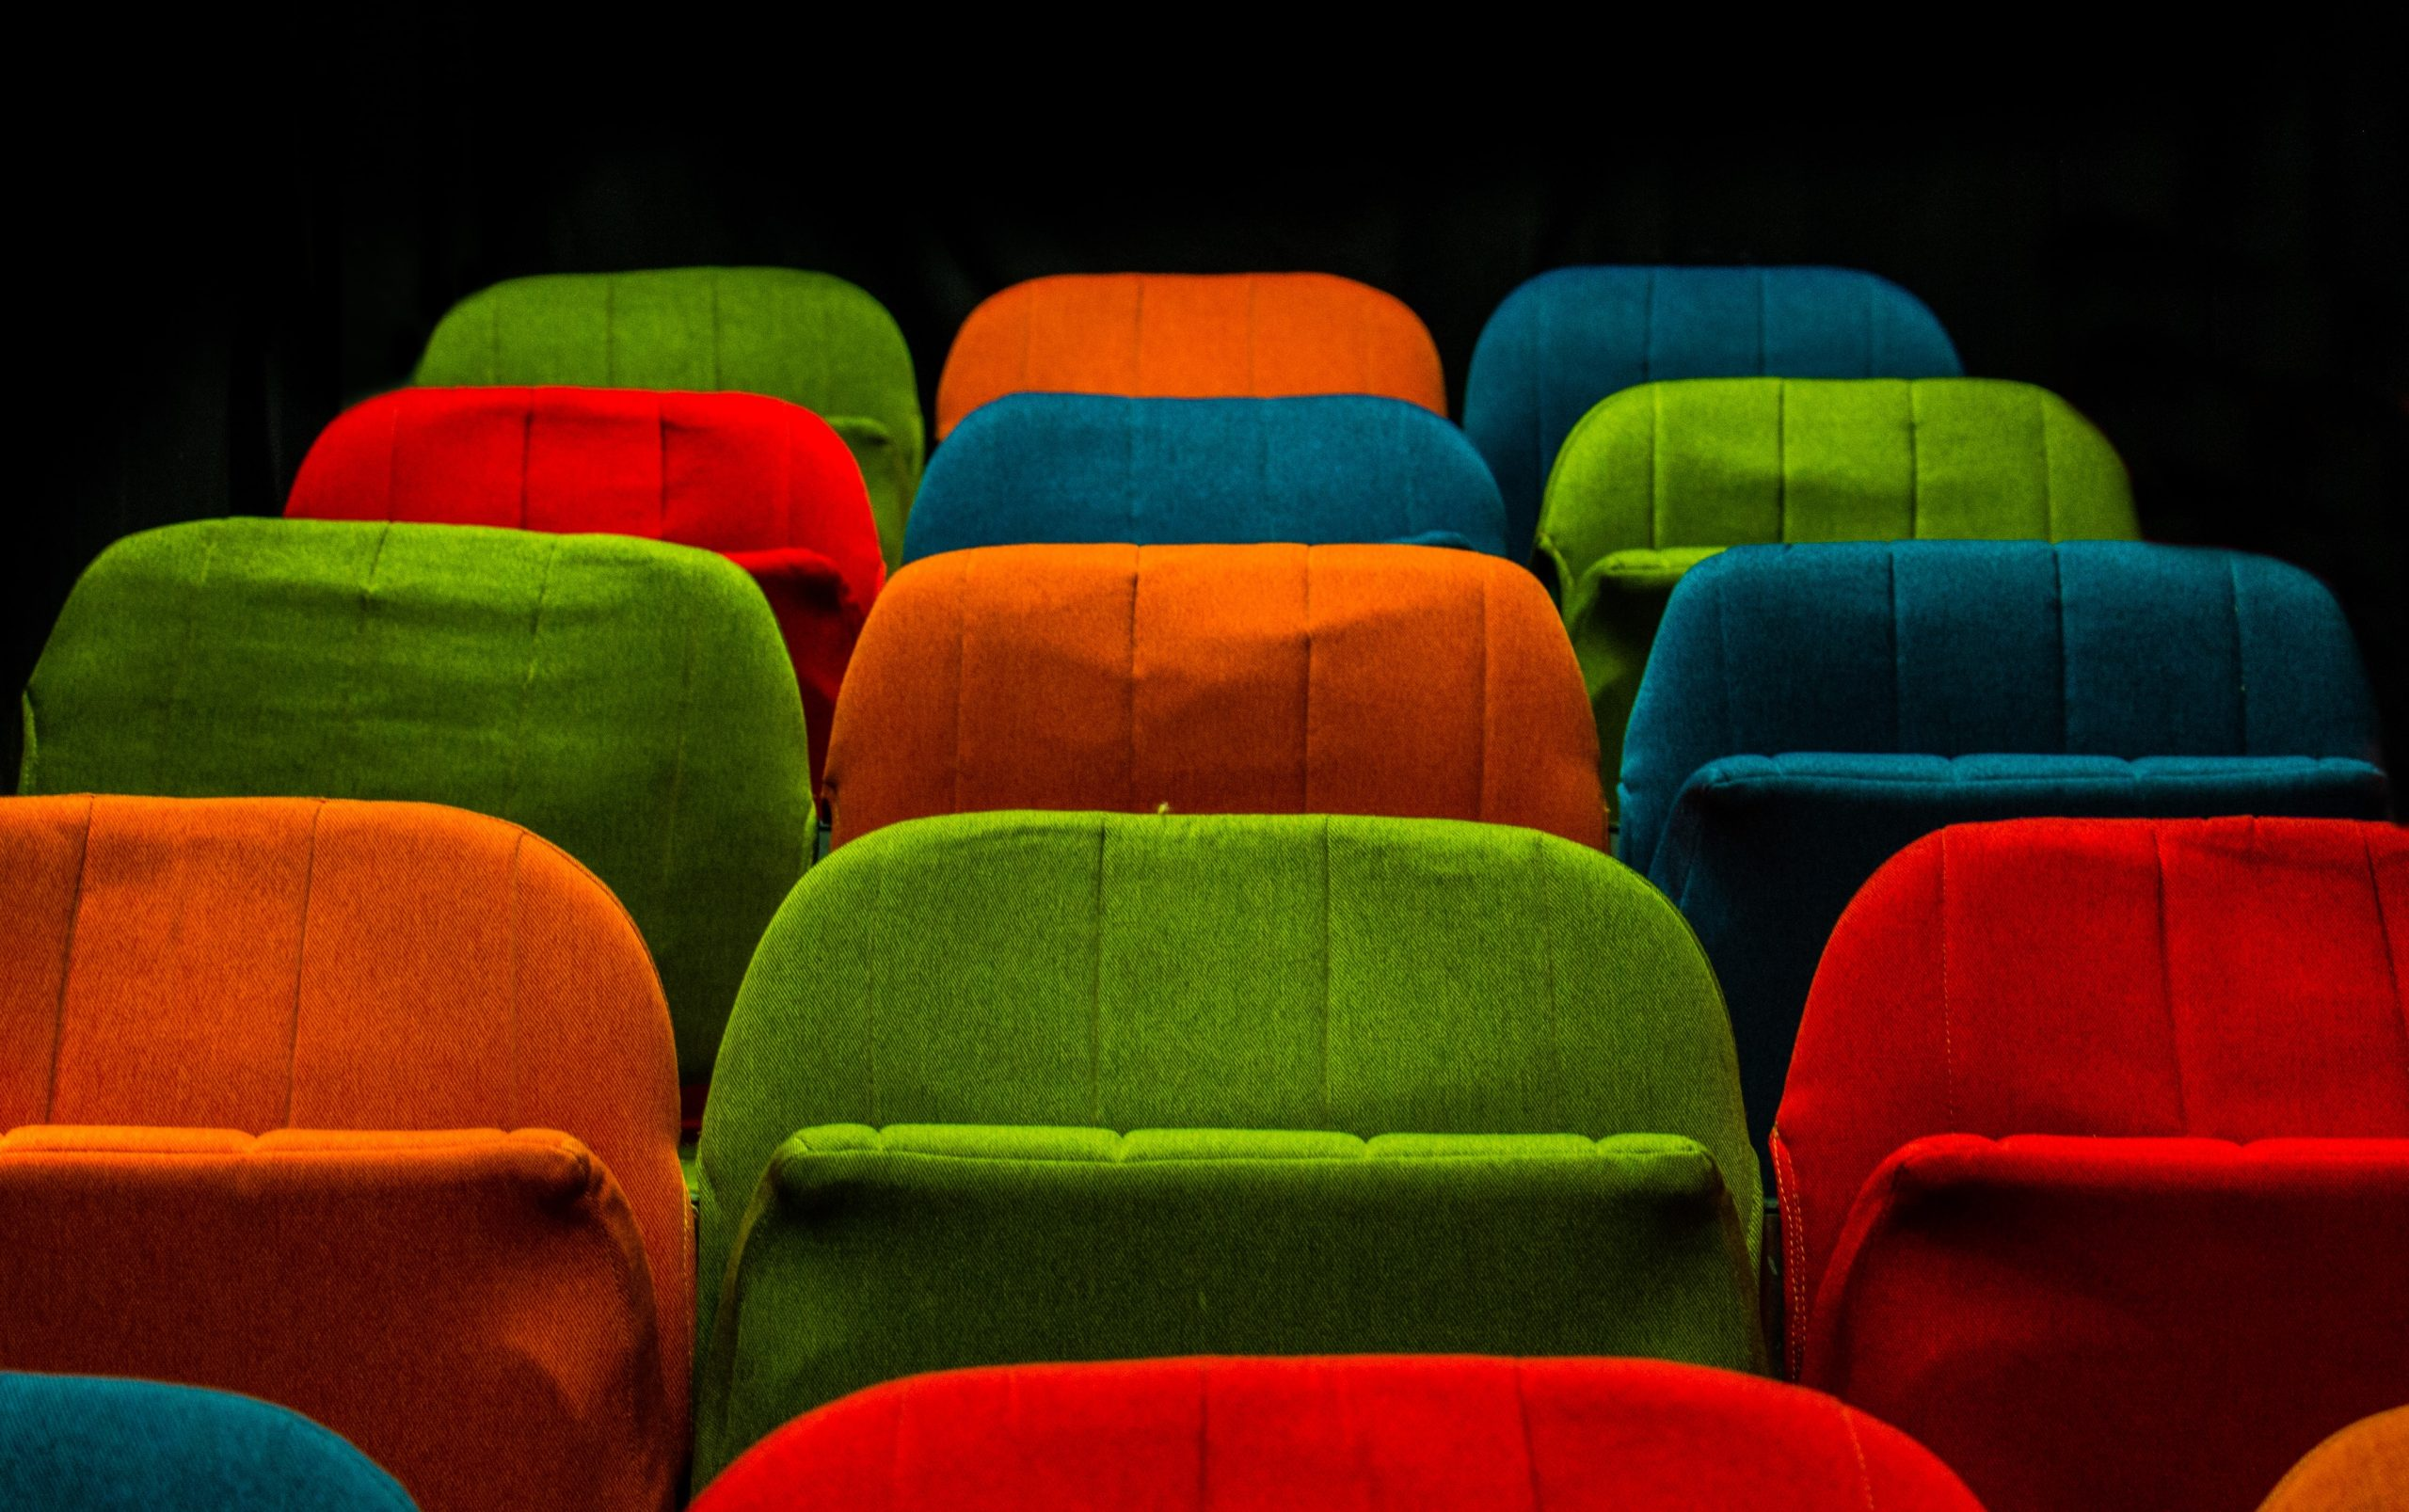 Help Catalogue Customer of Size Policies at Hundreds of Large Entertainment Venues